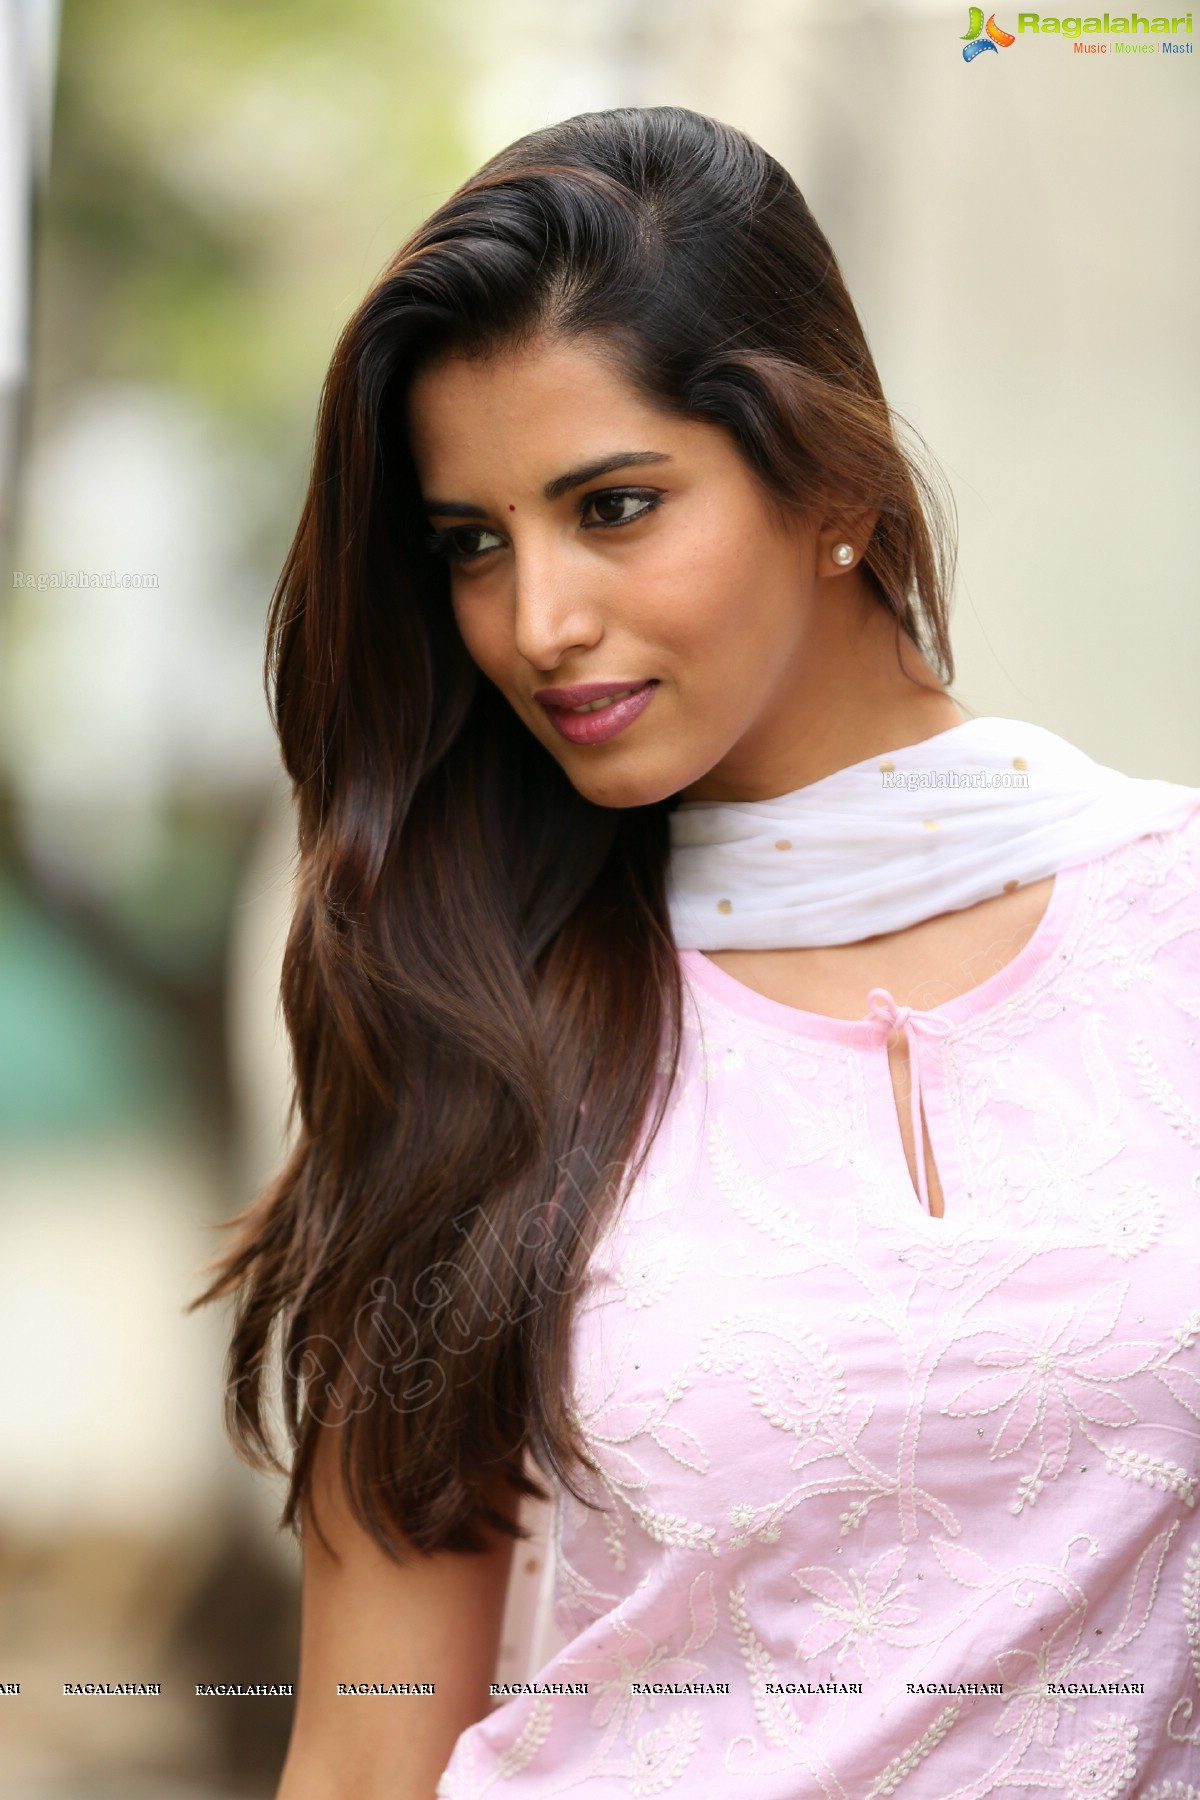 Forum on this topic: Florence Wysinger Allen, manasvi-mamgai/